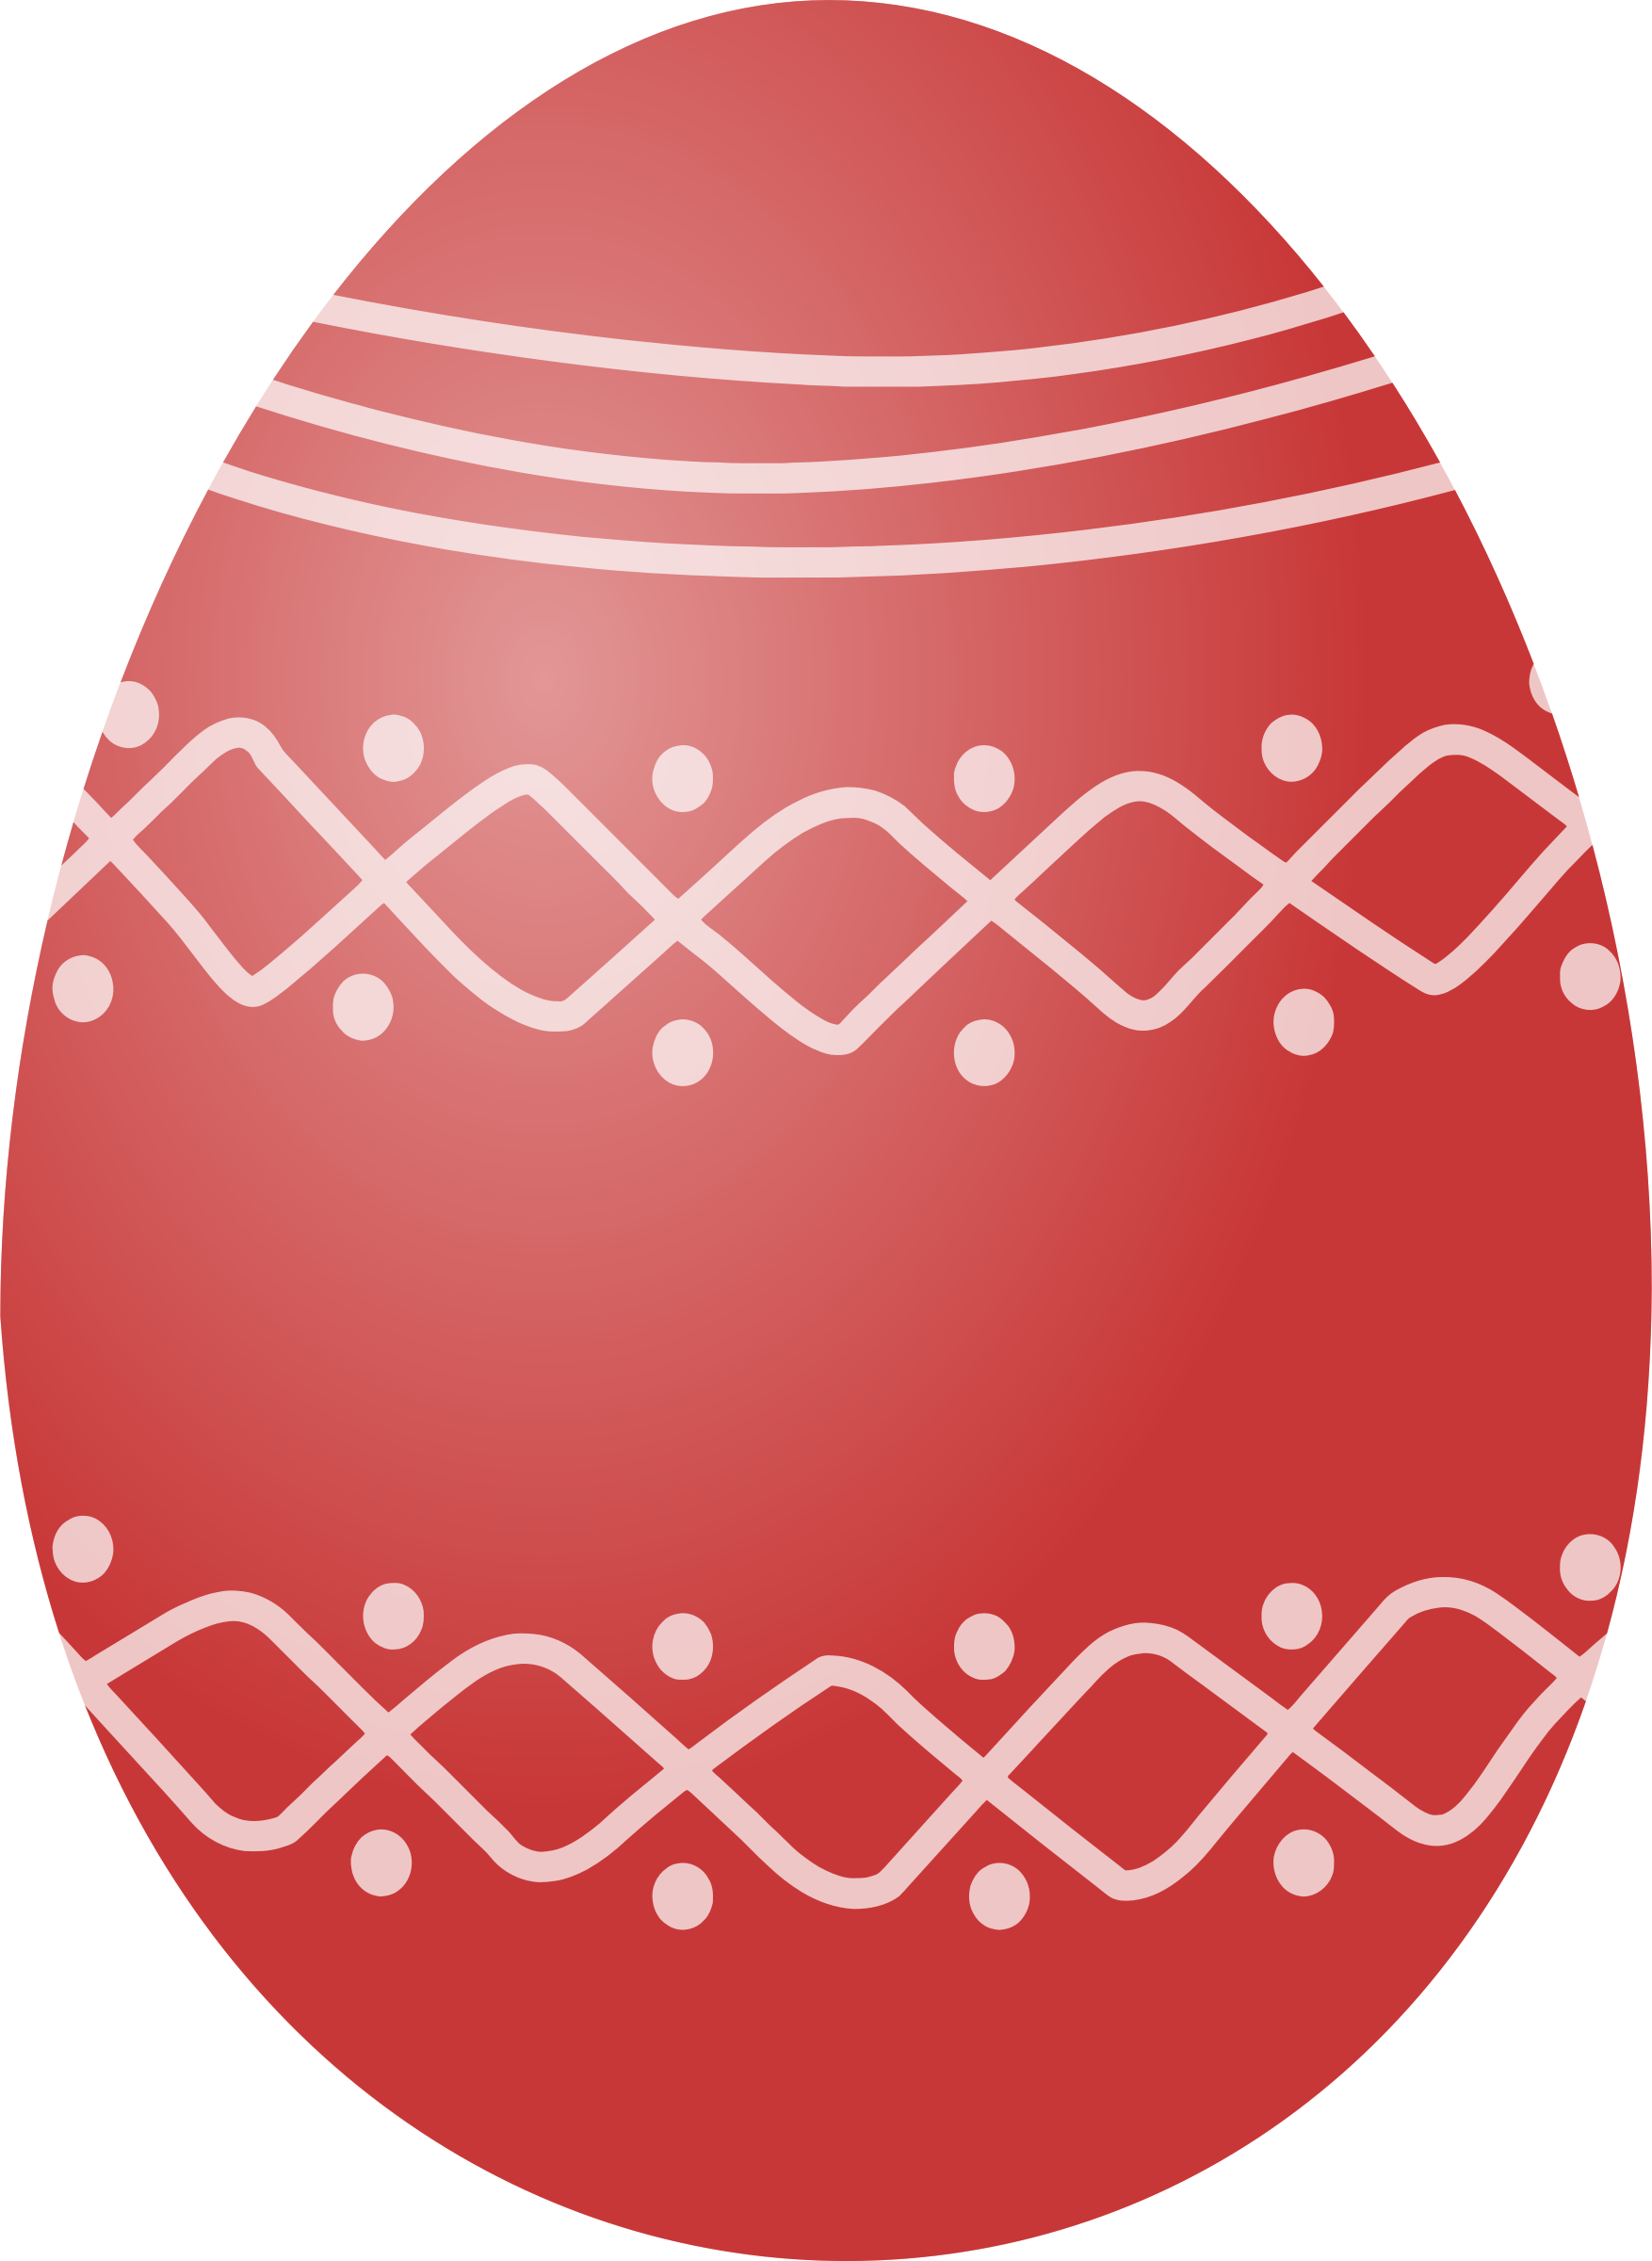 Easter egg 2 by Firkin